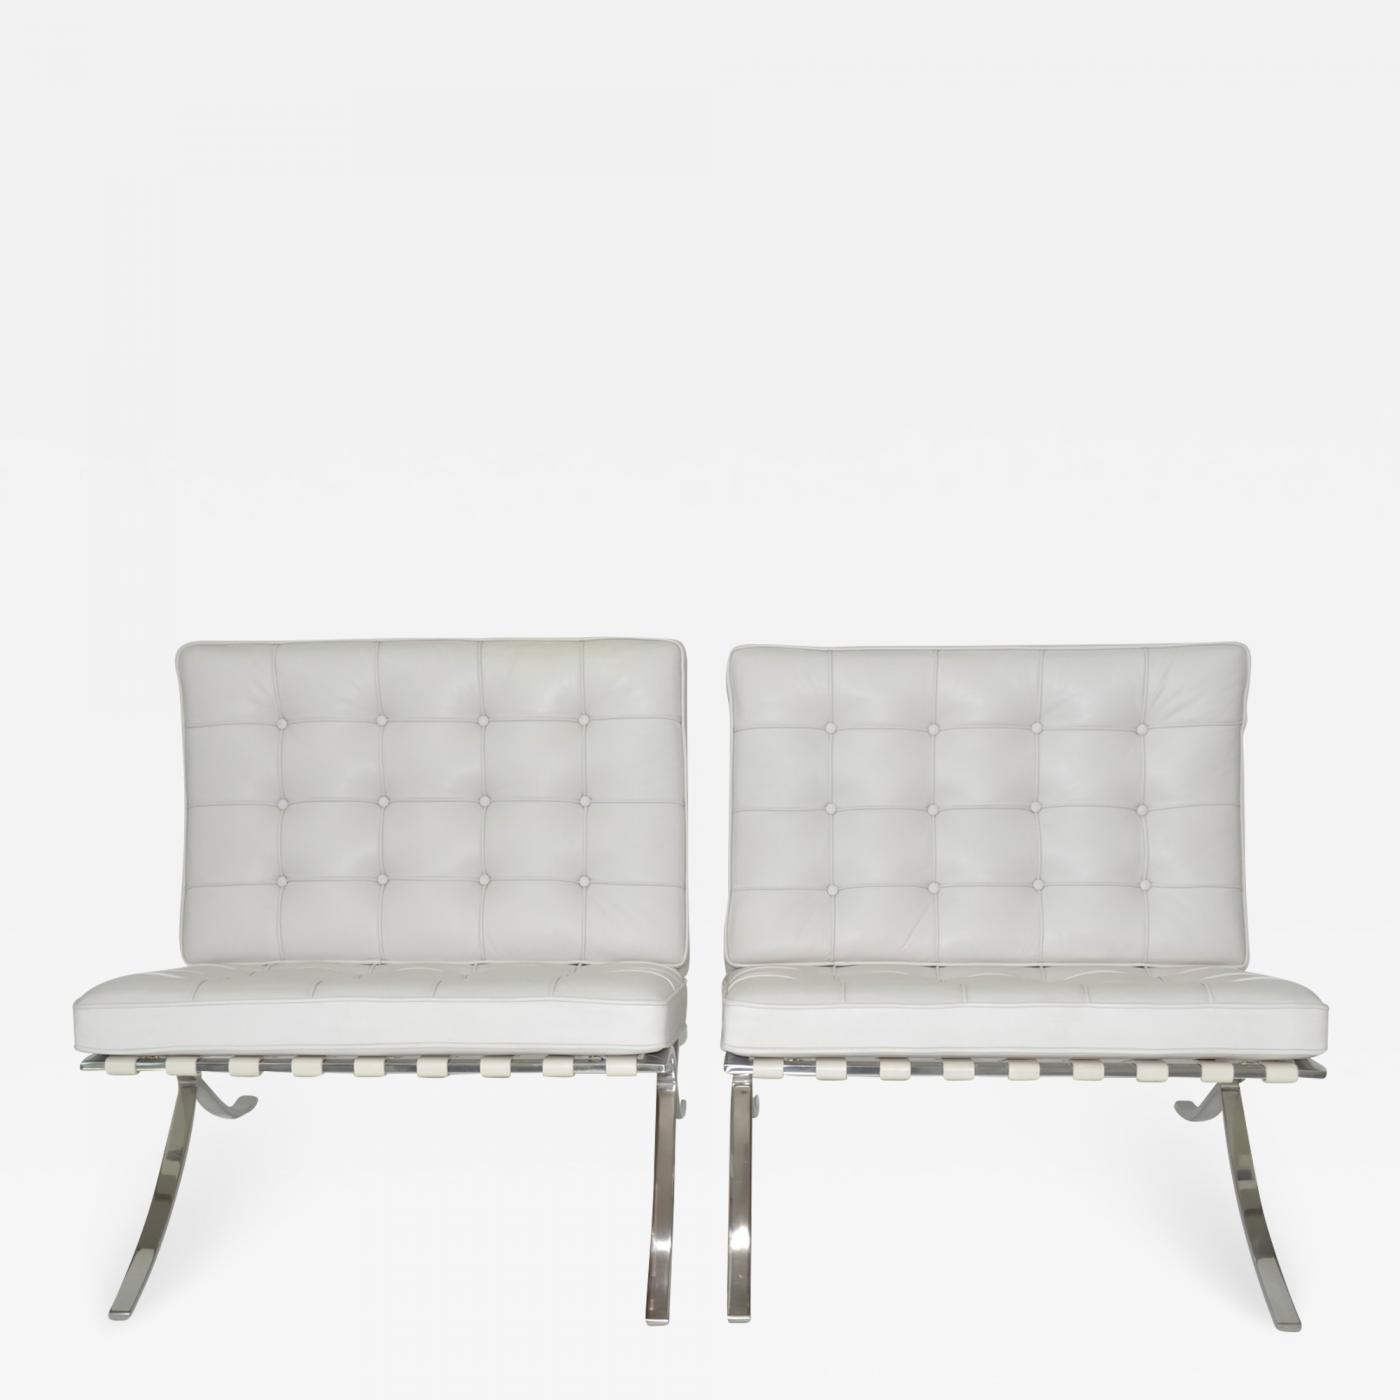 Stupendous Ludwig Mies Van Der Rohe Pair Of Knoll Barcelona Lounge Chairs In White Sabrina Leather C 1997 Uwap Interior Chair Design Uwaporg